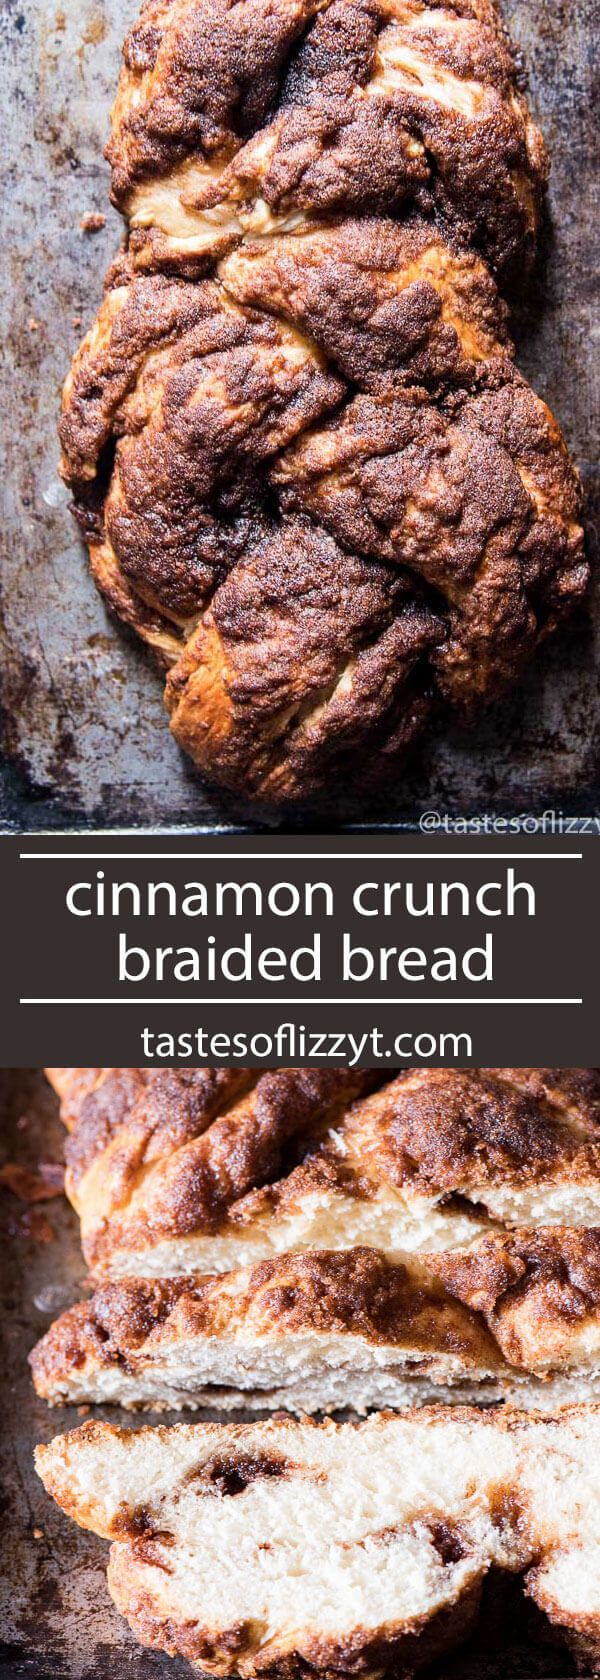 Panera has nothing on this bread recipe! Soft, homemade bread makes up this cinnamon crunch braided bread. Homemade cinnamon chips fill the inside!